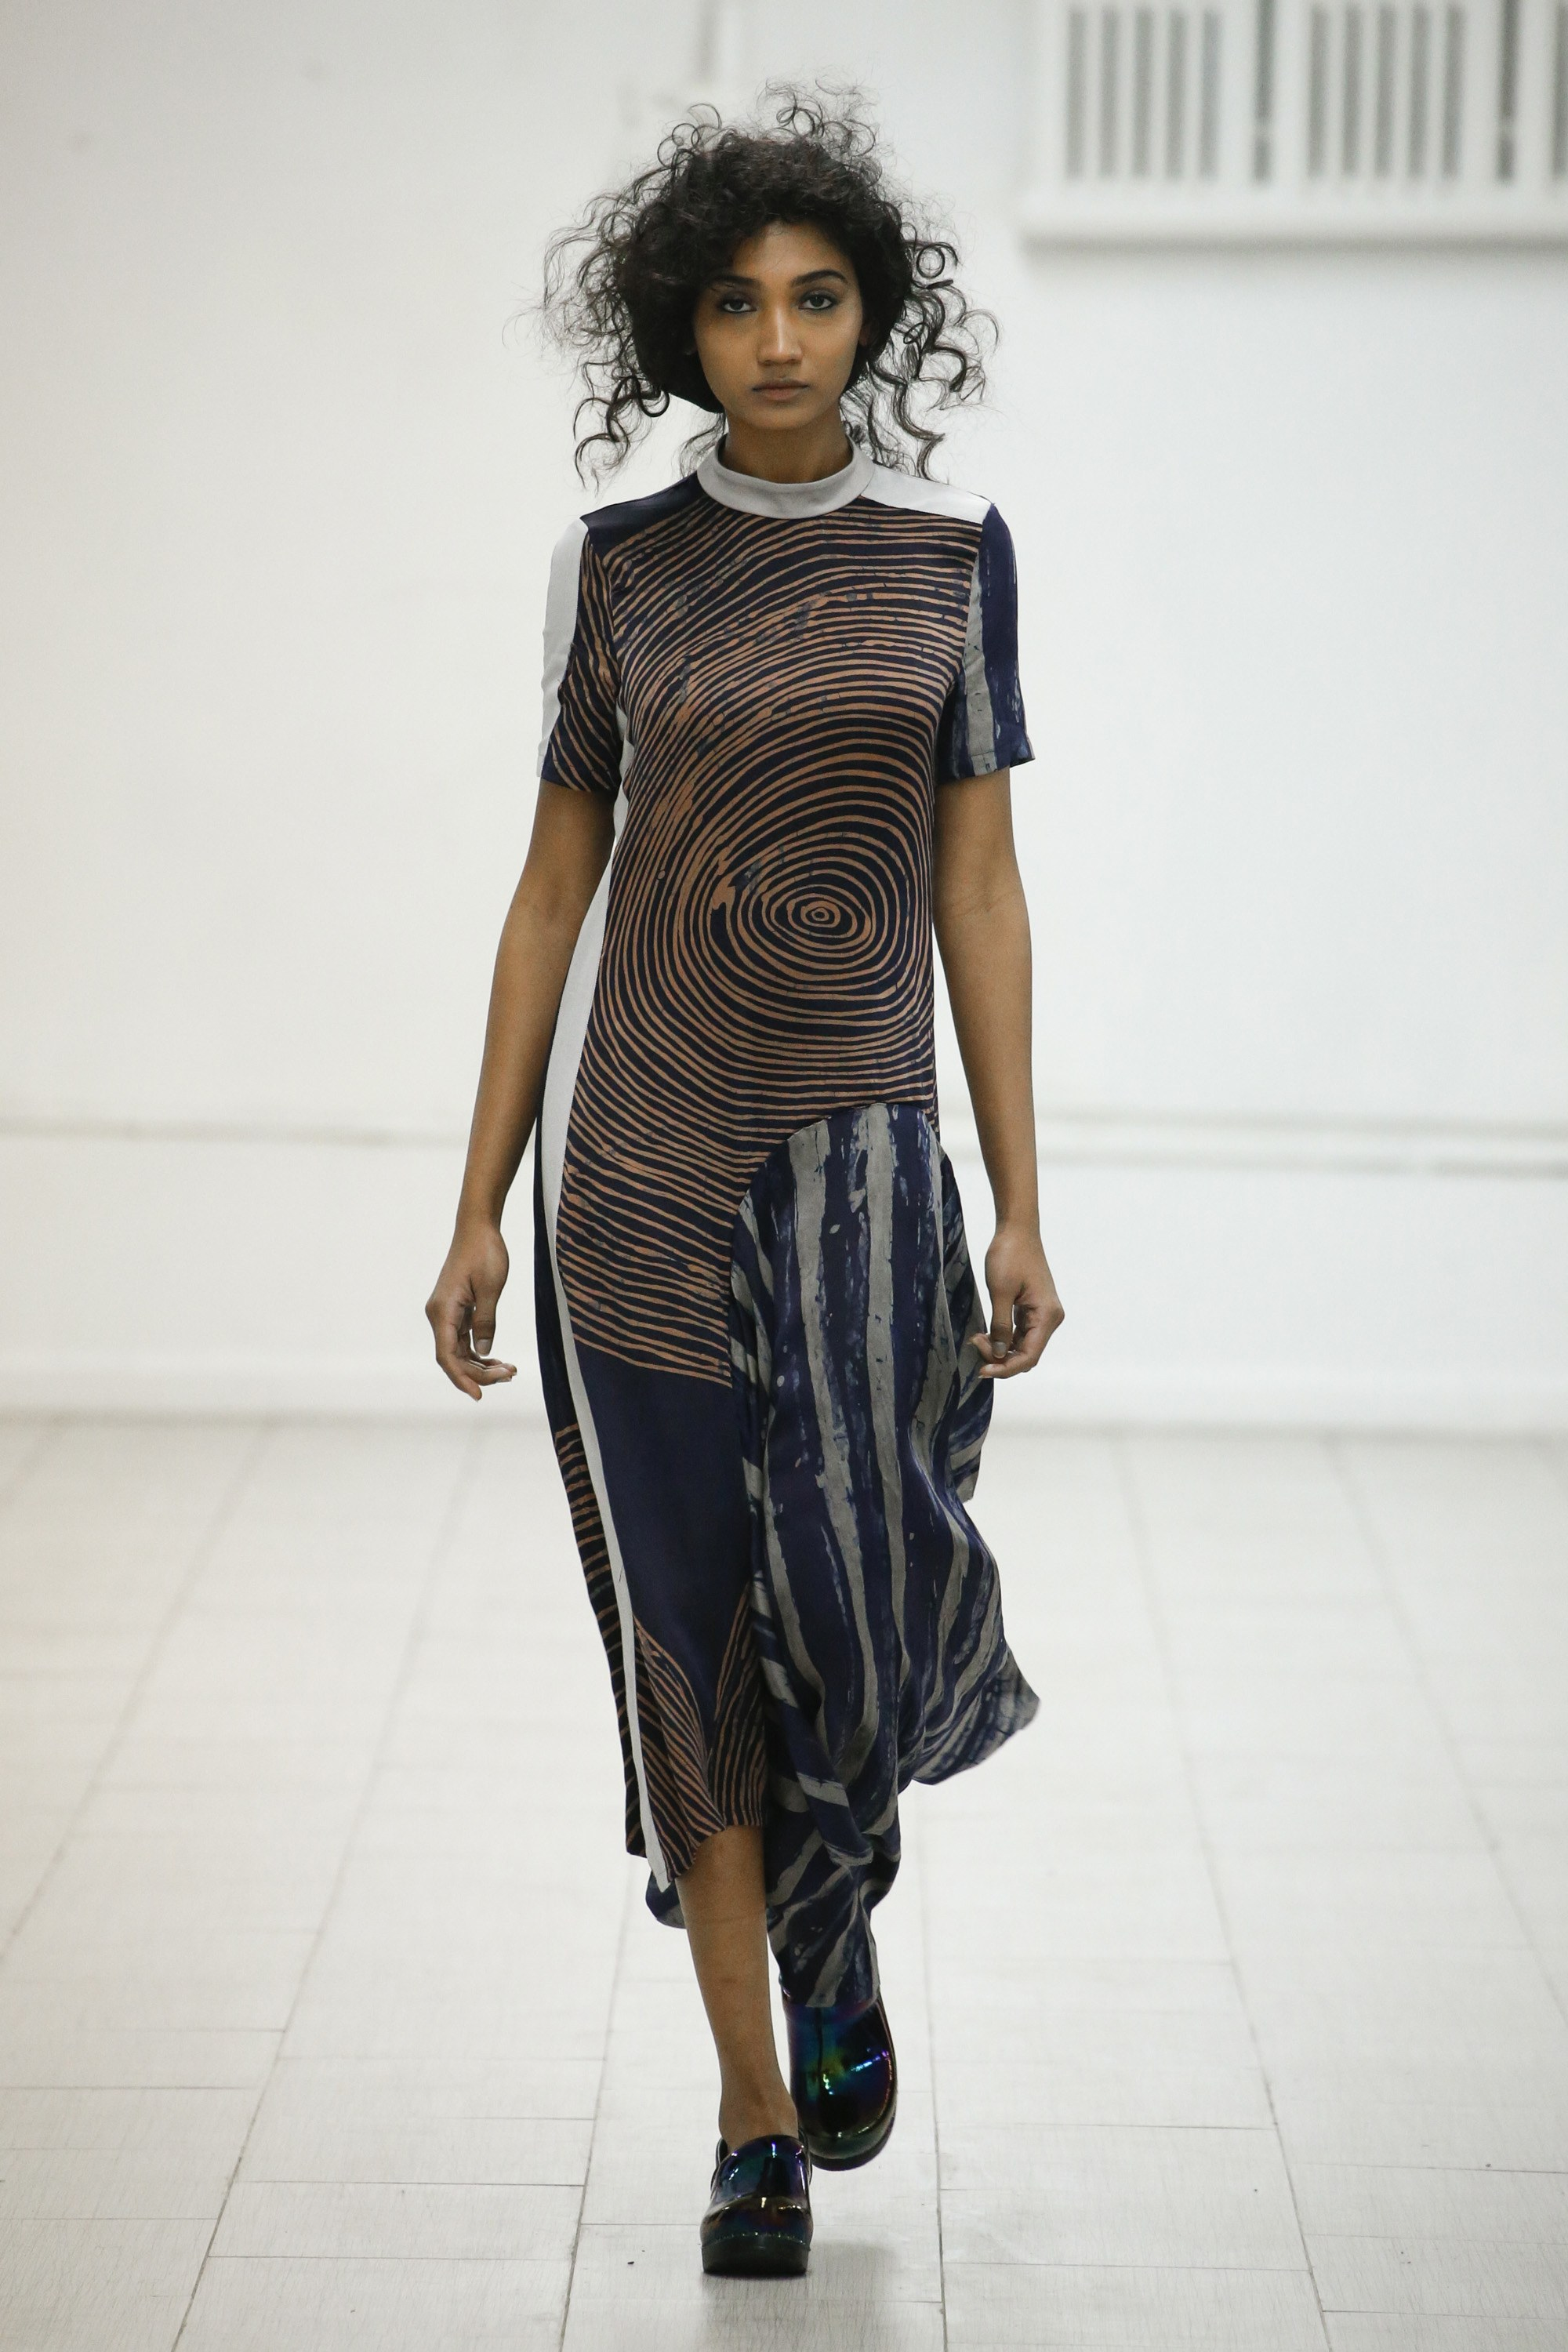 love-adire-maki-oh-wants-ala-koba-life-unveils-ala-koba-collection-nyfw-2018-lookbook